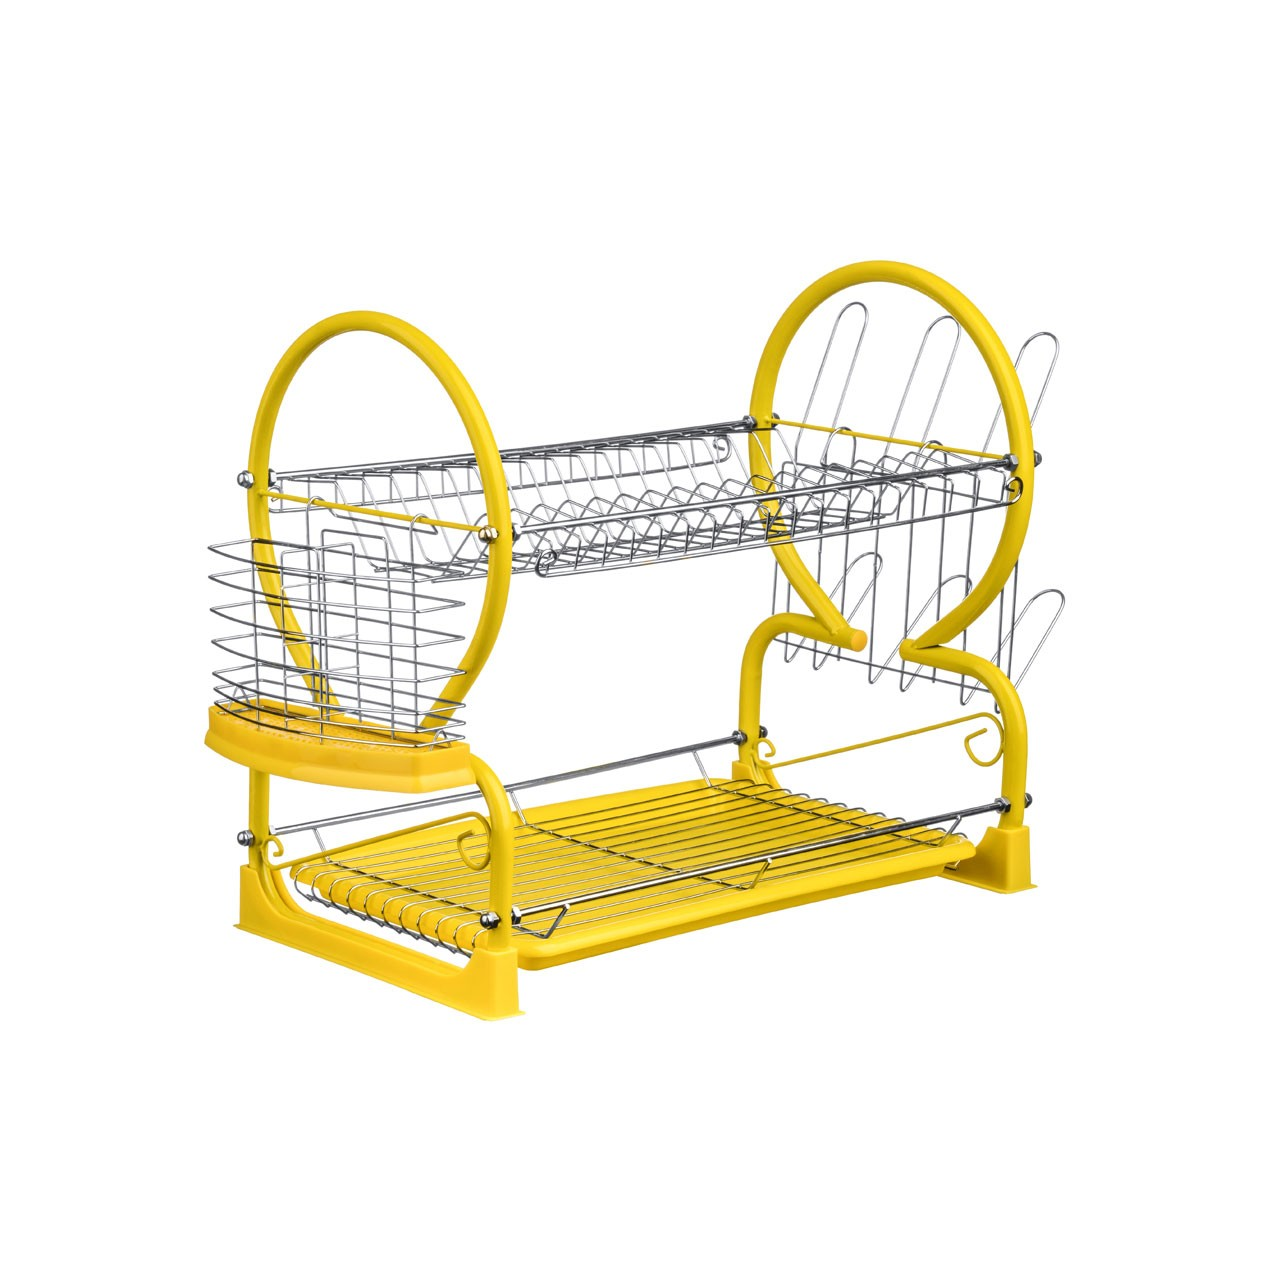 2-Tier Dish Drainer - Yellow